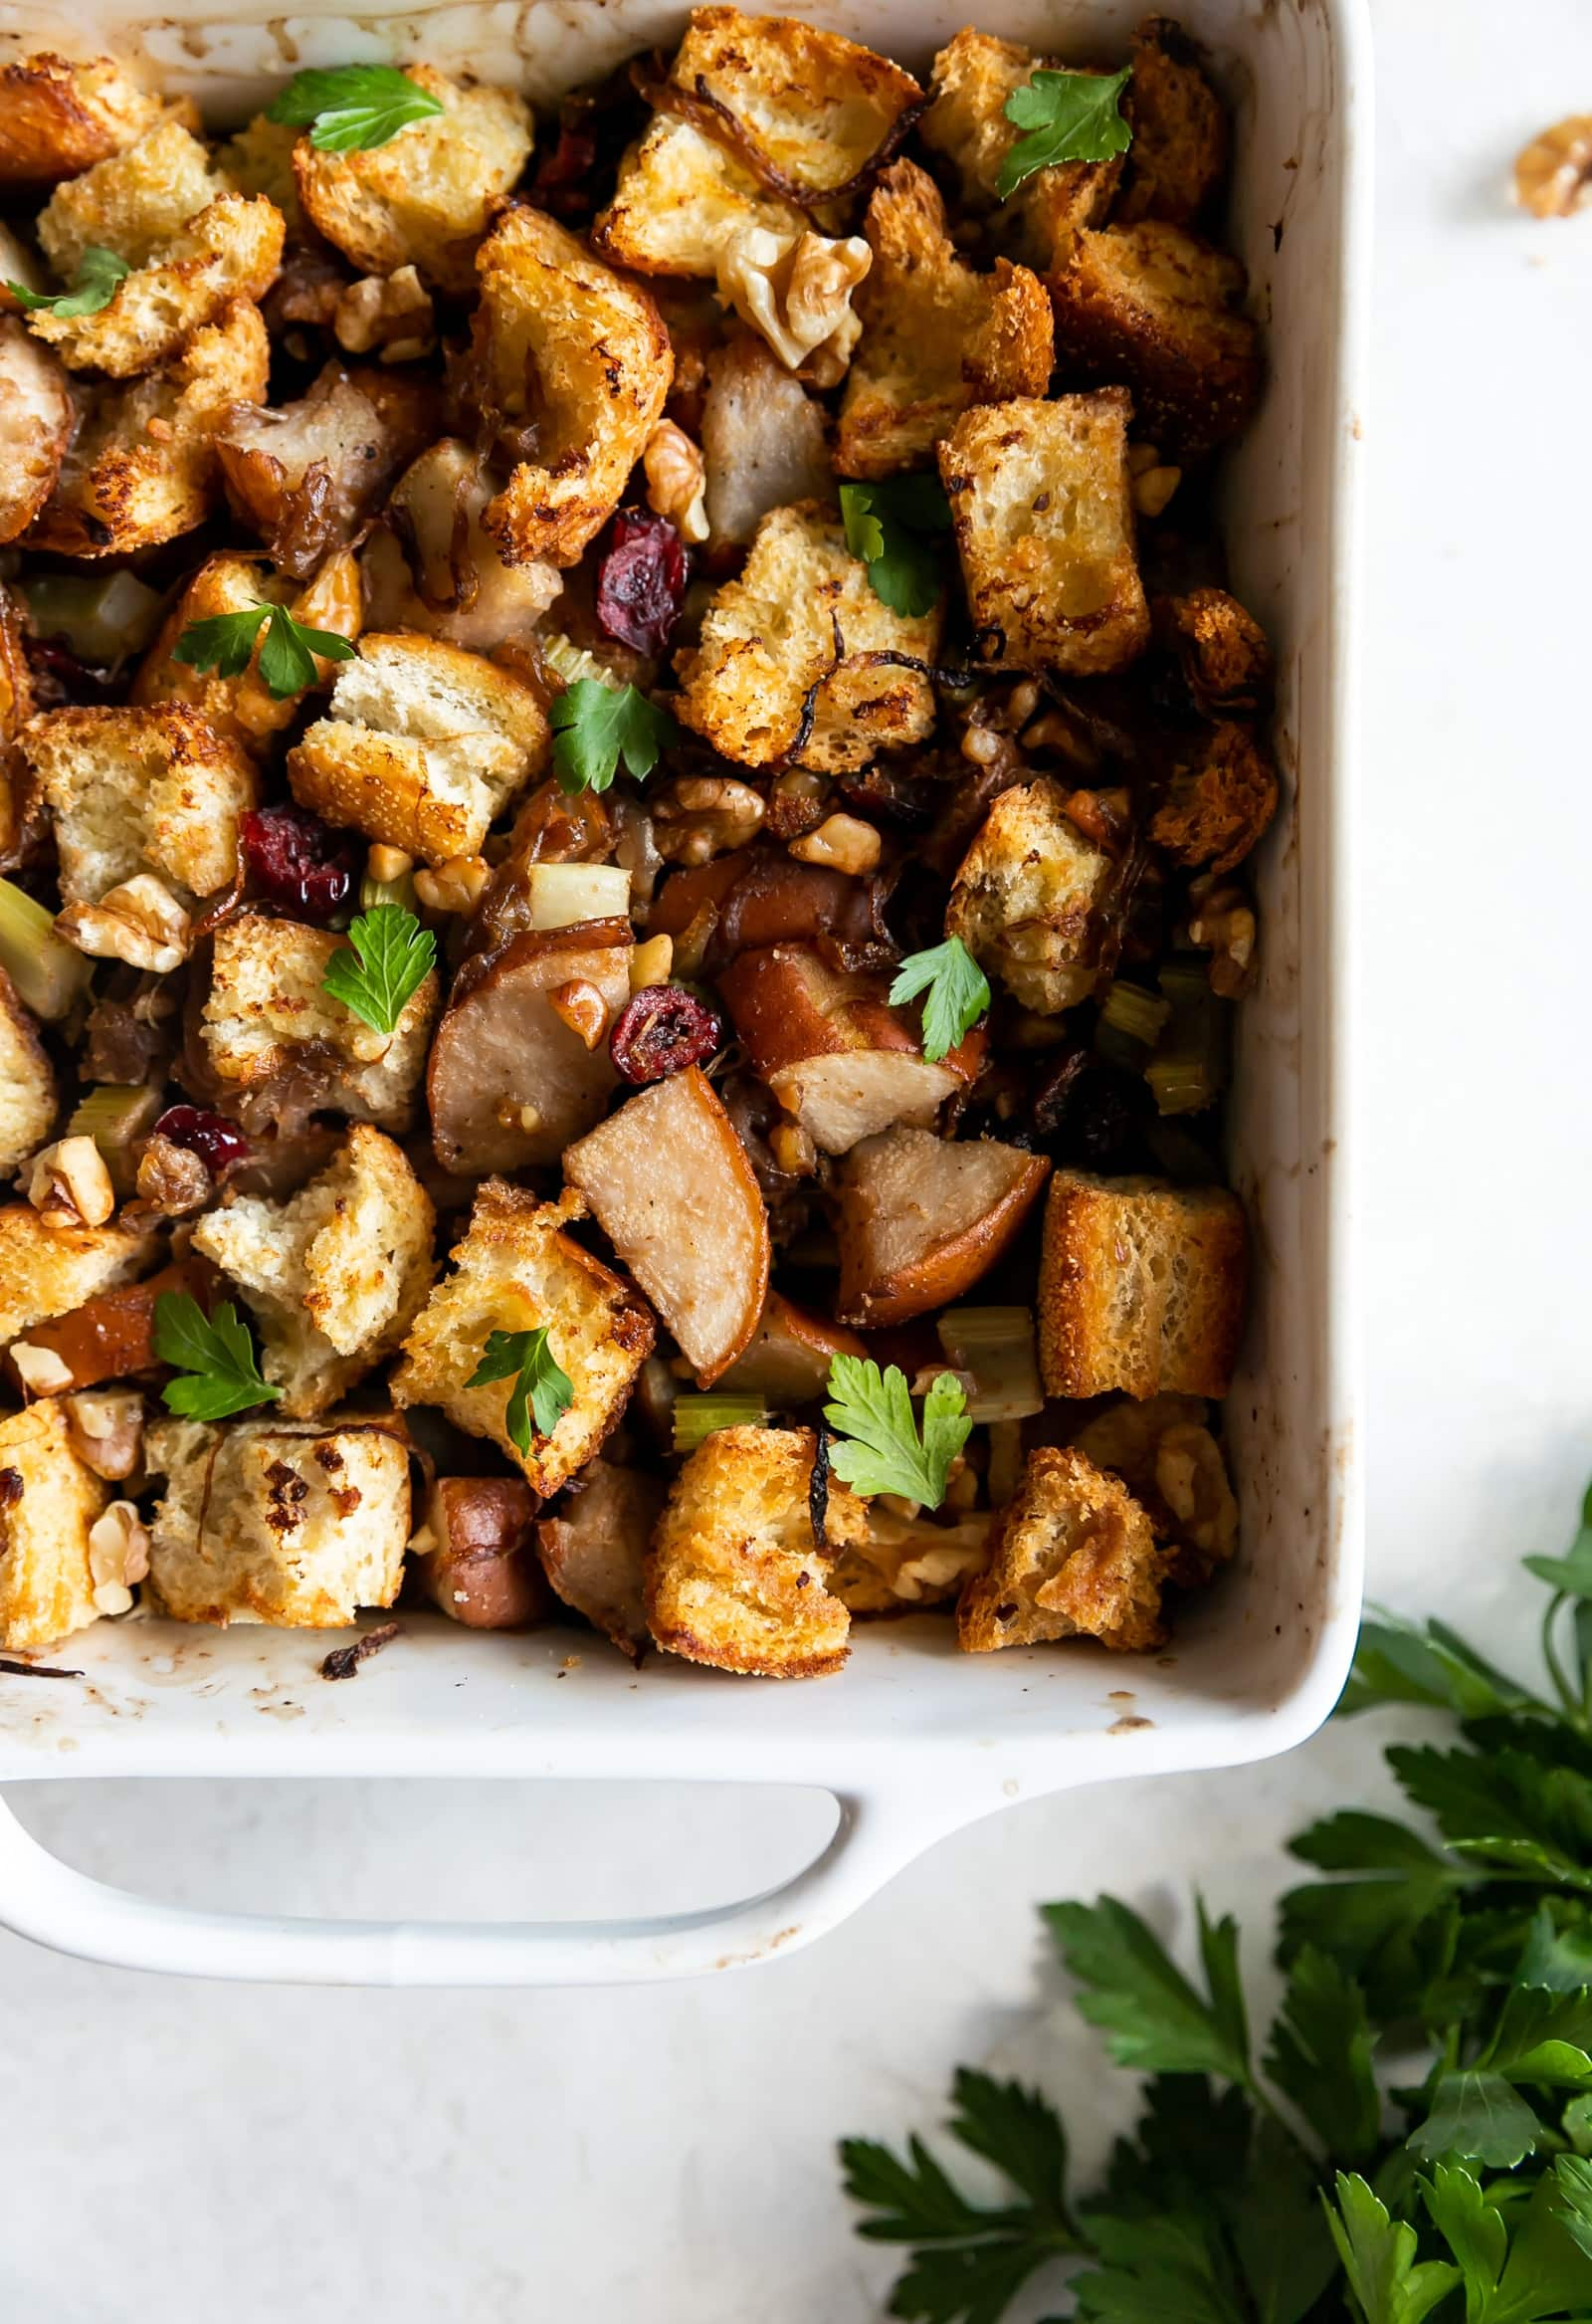 Caramelized Onion Pear & Walnut Stuffing. A flavorful and easy-to-make Thanksgiving stuffing made with caramelized onions, pears, celery, walnuts, and dried cranberries. #stuffing #thanksgiving